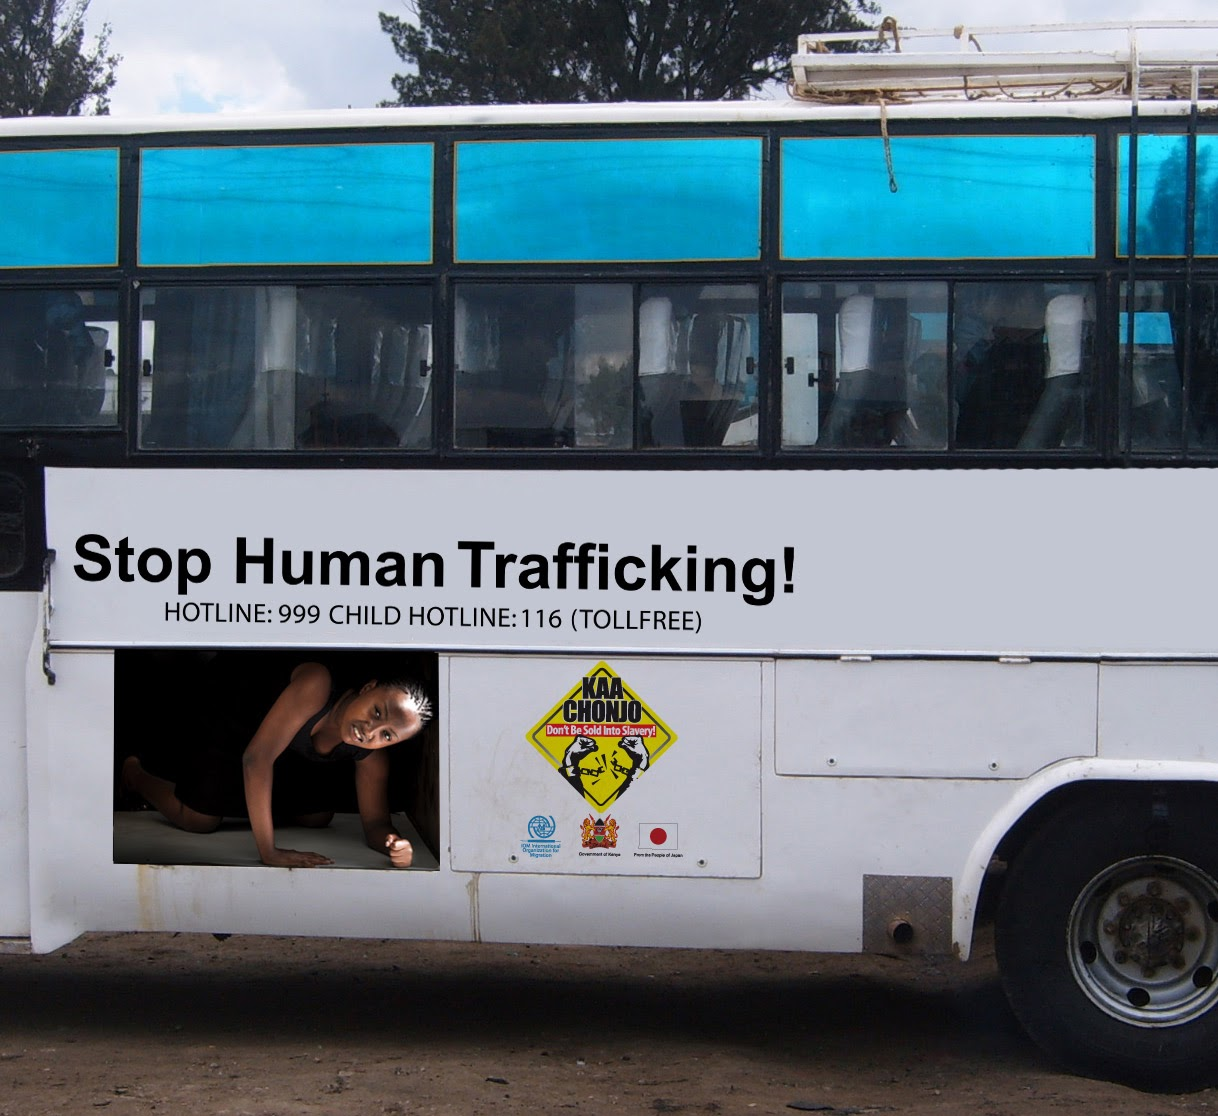 Congress should address loopholes that separate families and contribute to human-trafficking